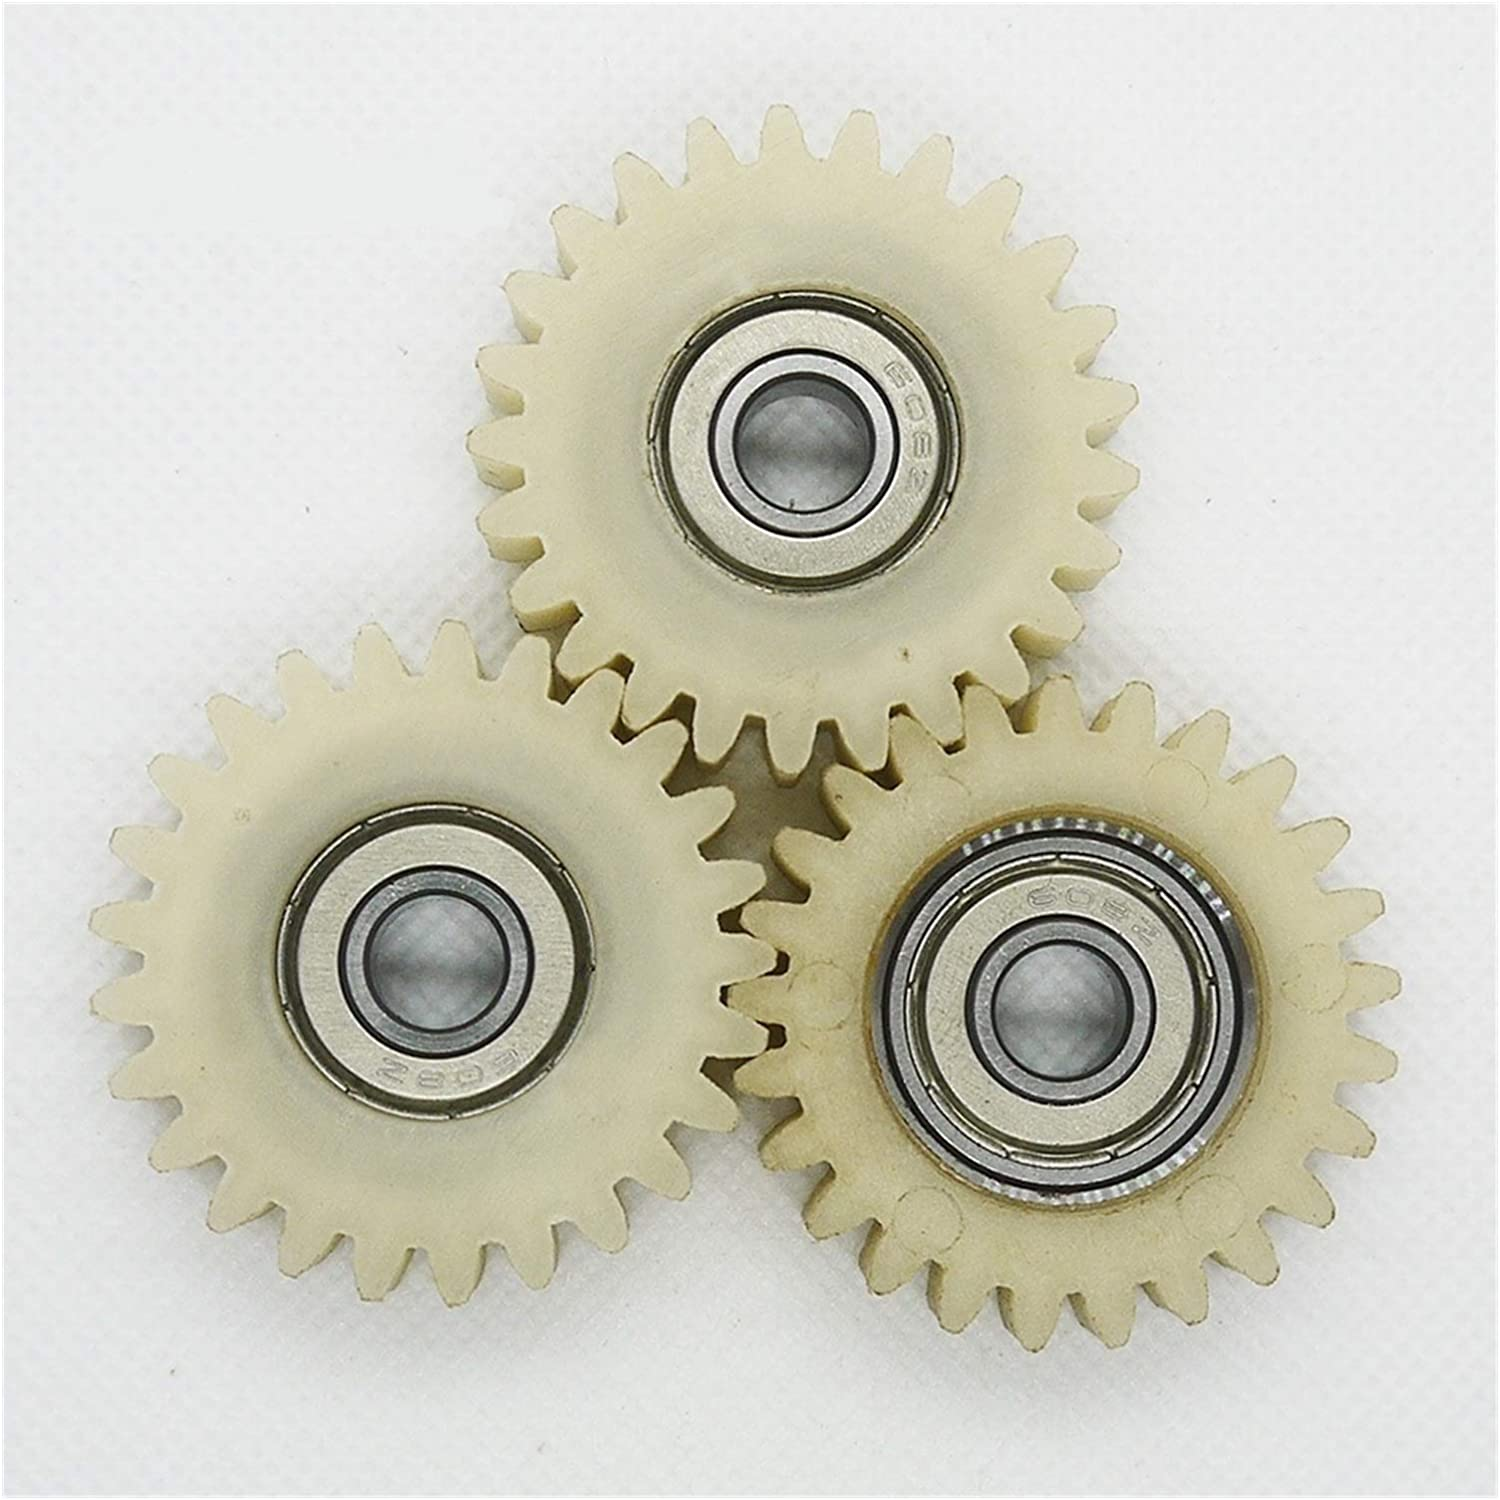 TMP1105 3pcs Cheap mail order specialty store Plastic Gears 25 Teeth 40mm Ball Nylon 628 Fashionable Bea PA66